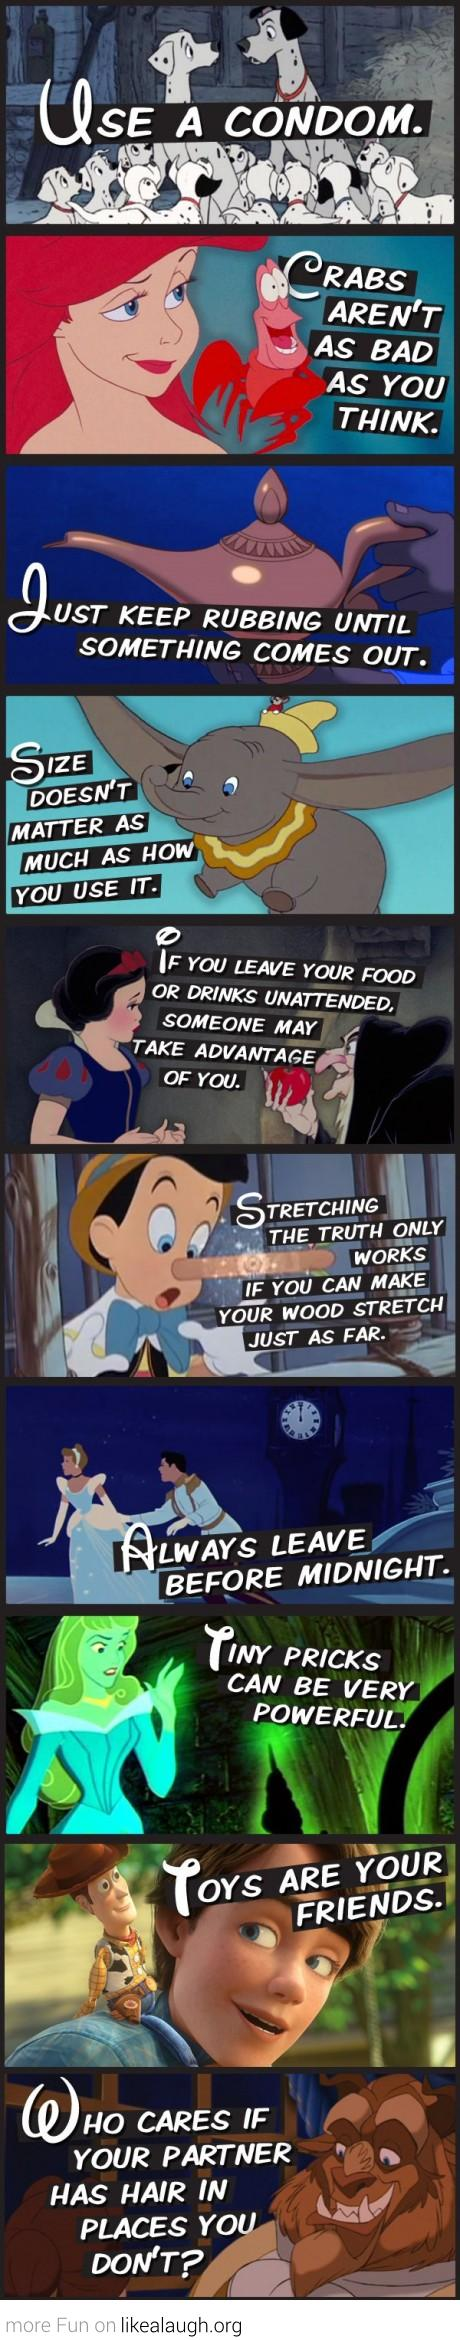 A few tips from Disney Movies | Likealaugh